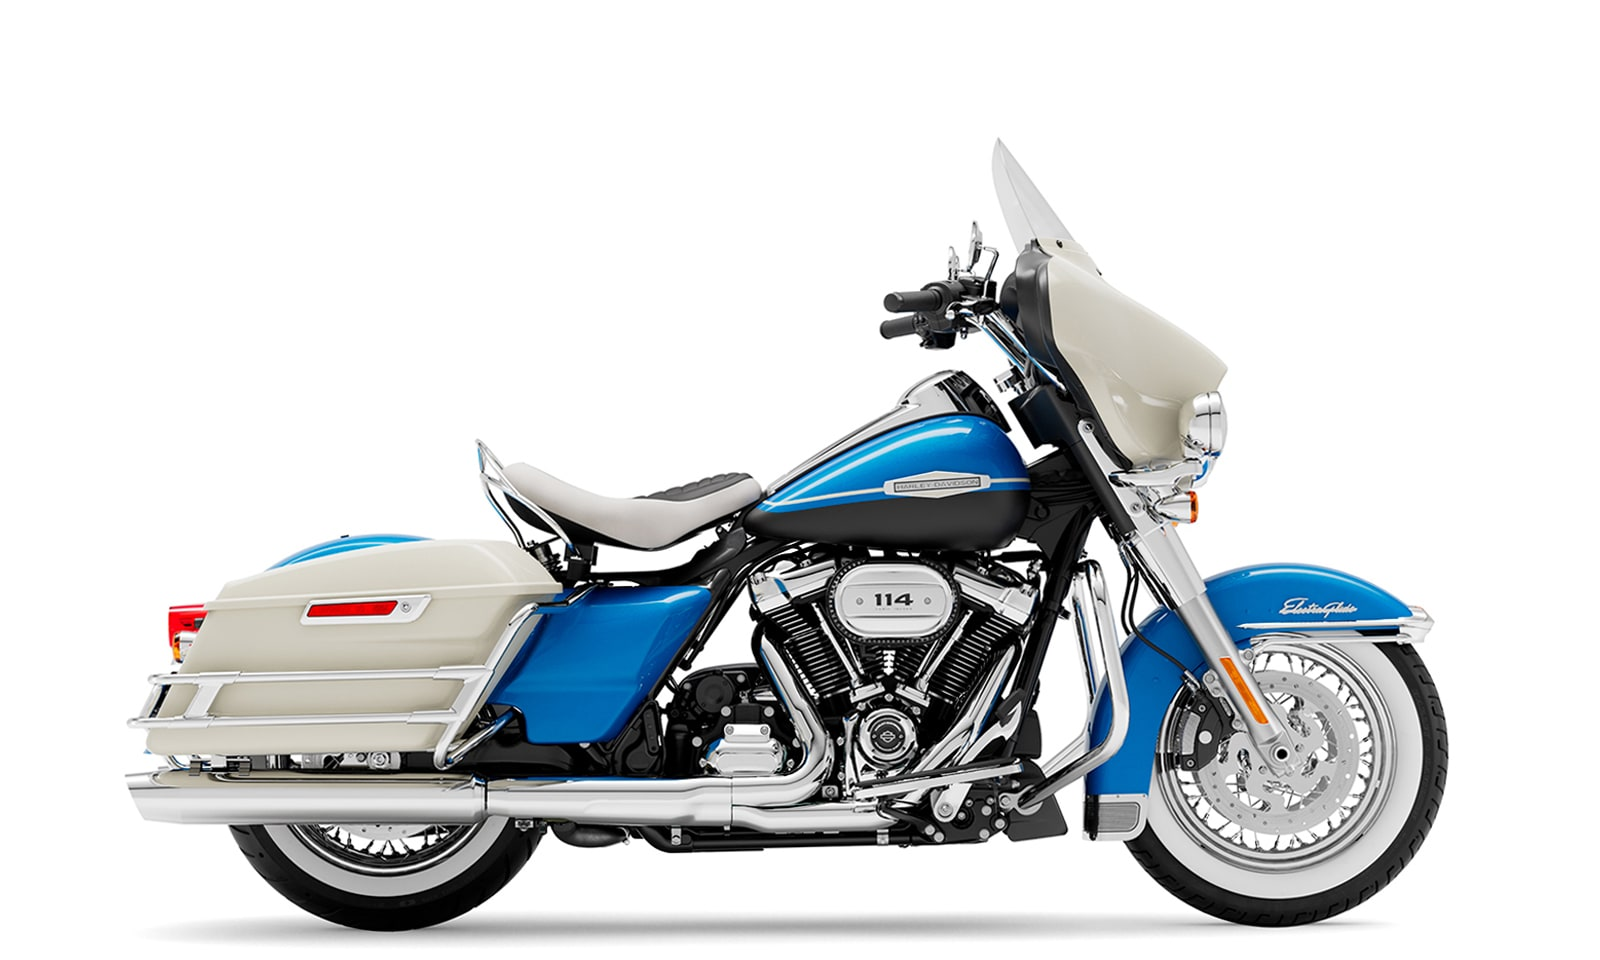 2021 electra glide revival motorcycle